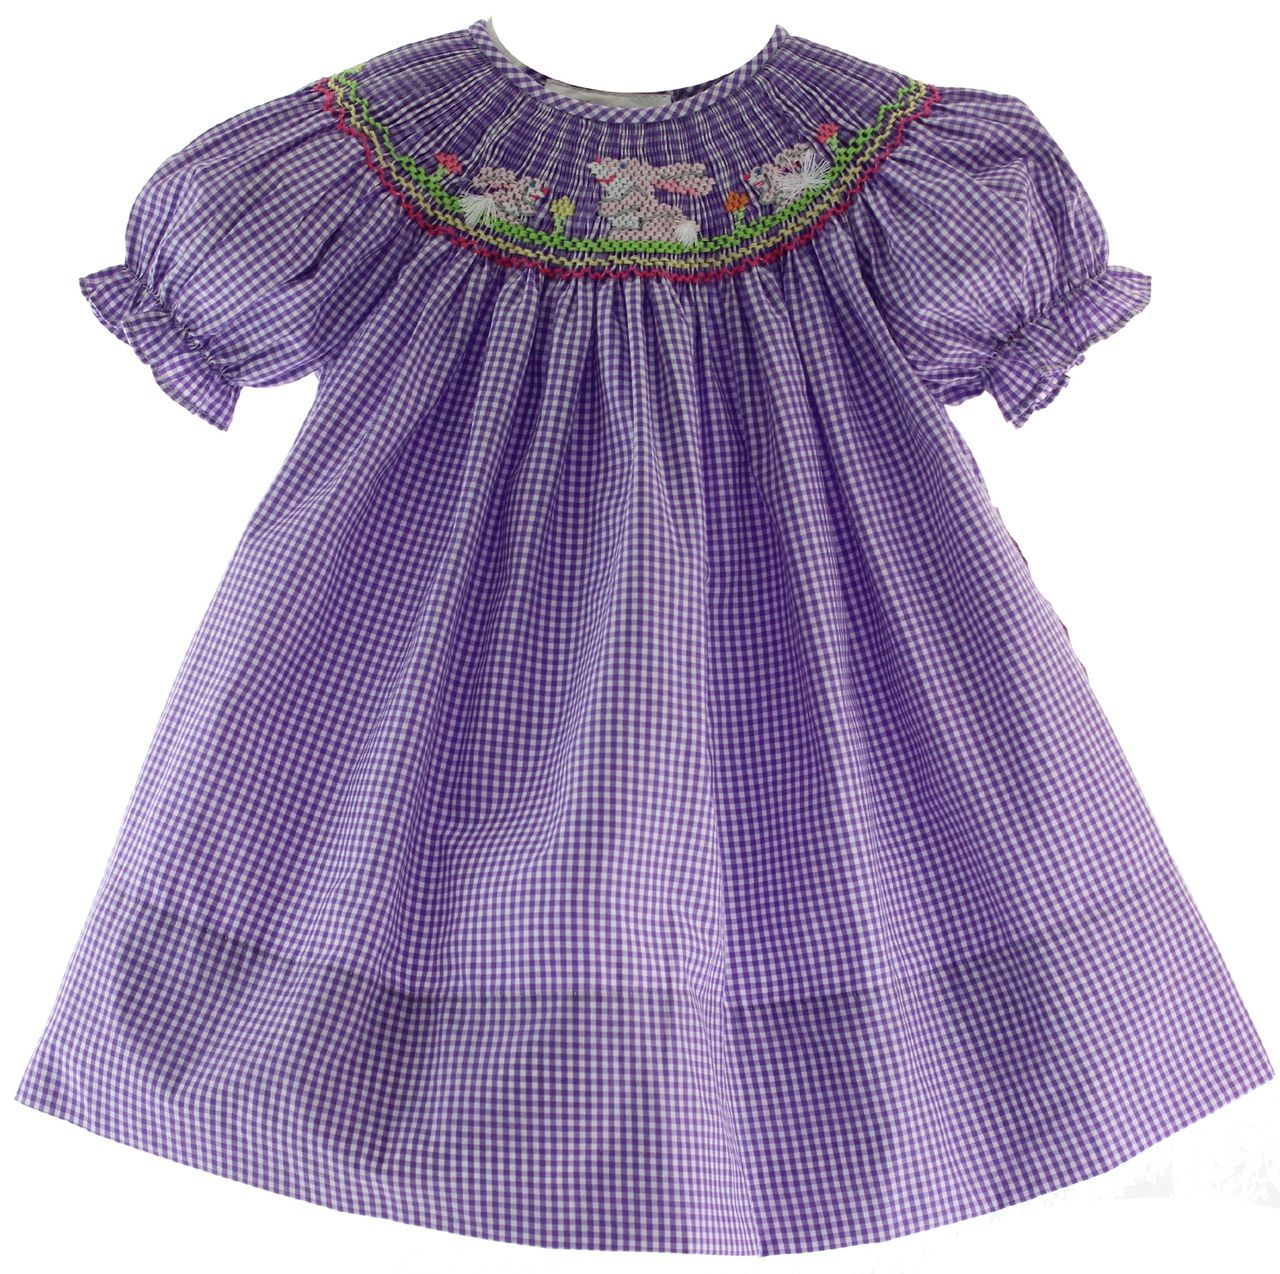 e28c7c6bf Hiccups Childrens Boutique - Girls Purple Smocked Easter Bunny Bishop Dress,  $42.00 (http: